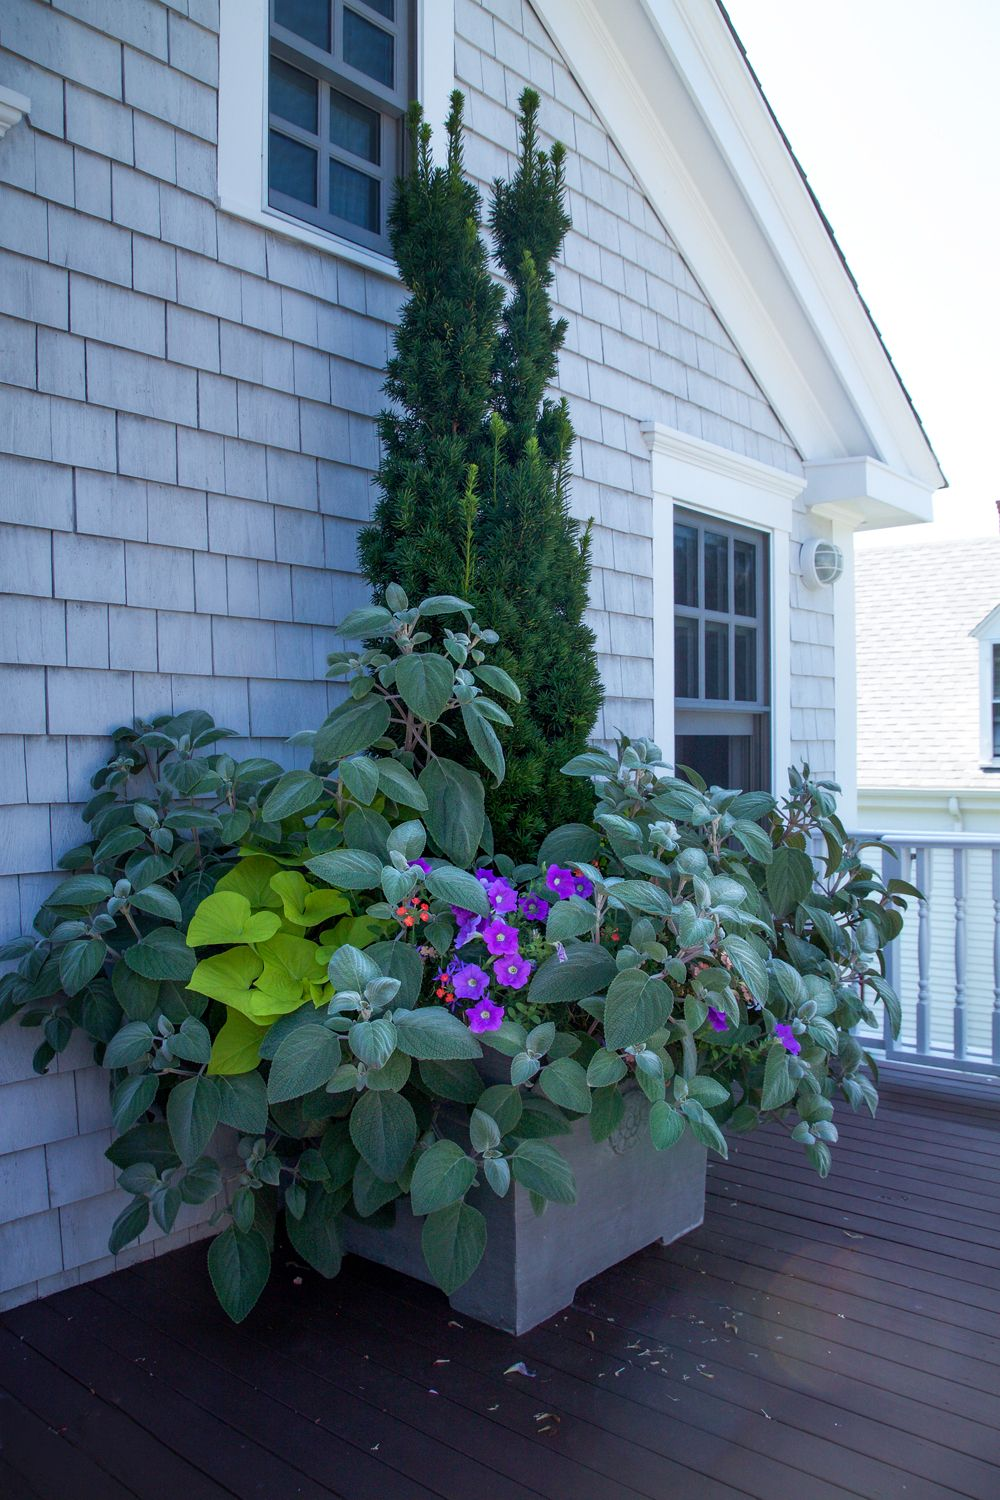 In home garden ideas   Garden Ideas to Steal from Provincetown on Cape Cod  Planters